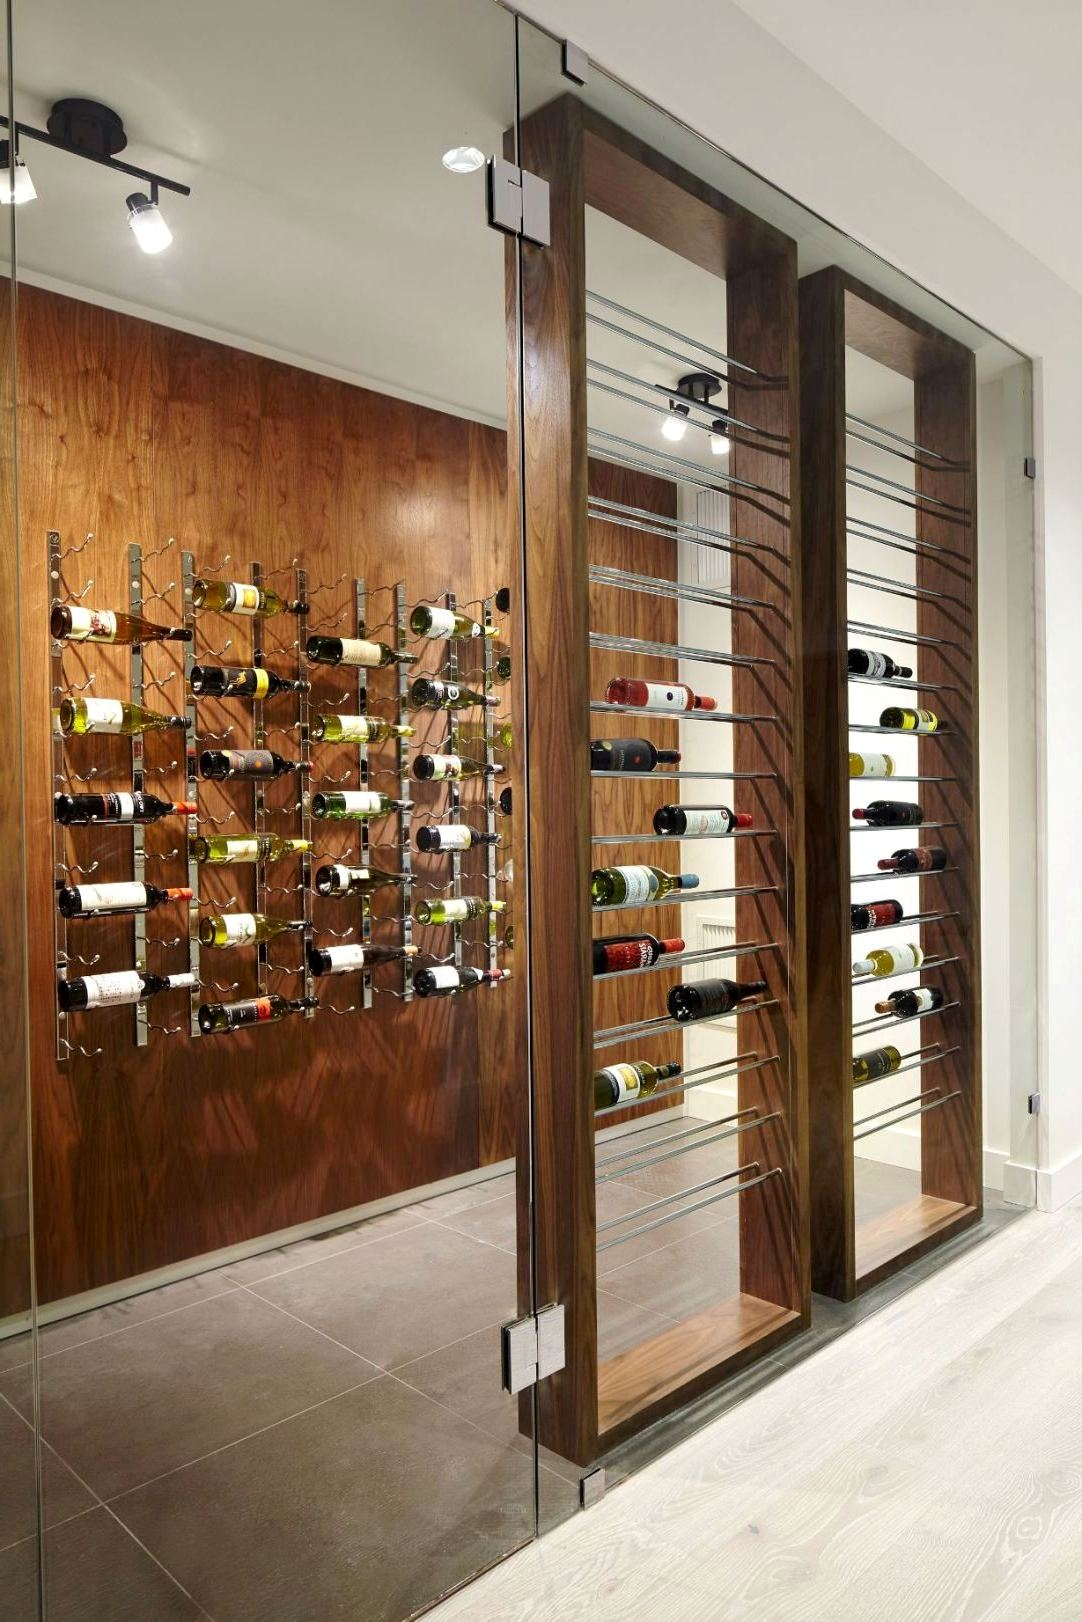 Metal Wine Storage Racks Avoid Choosing The Wrong Racking Work With A Trusted Designer And